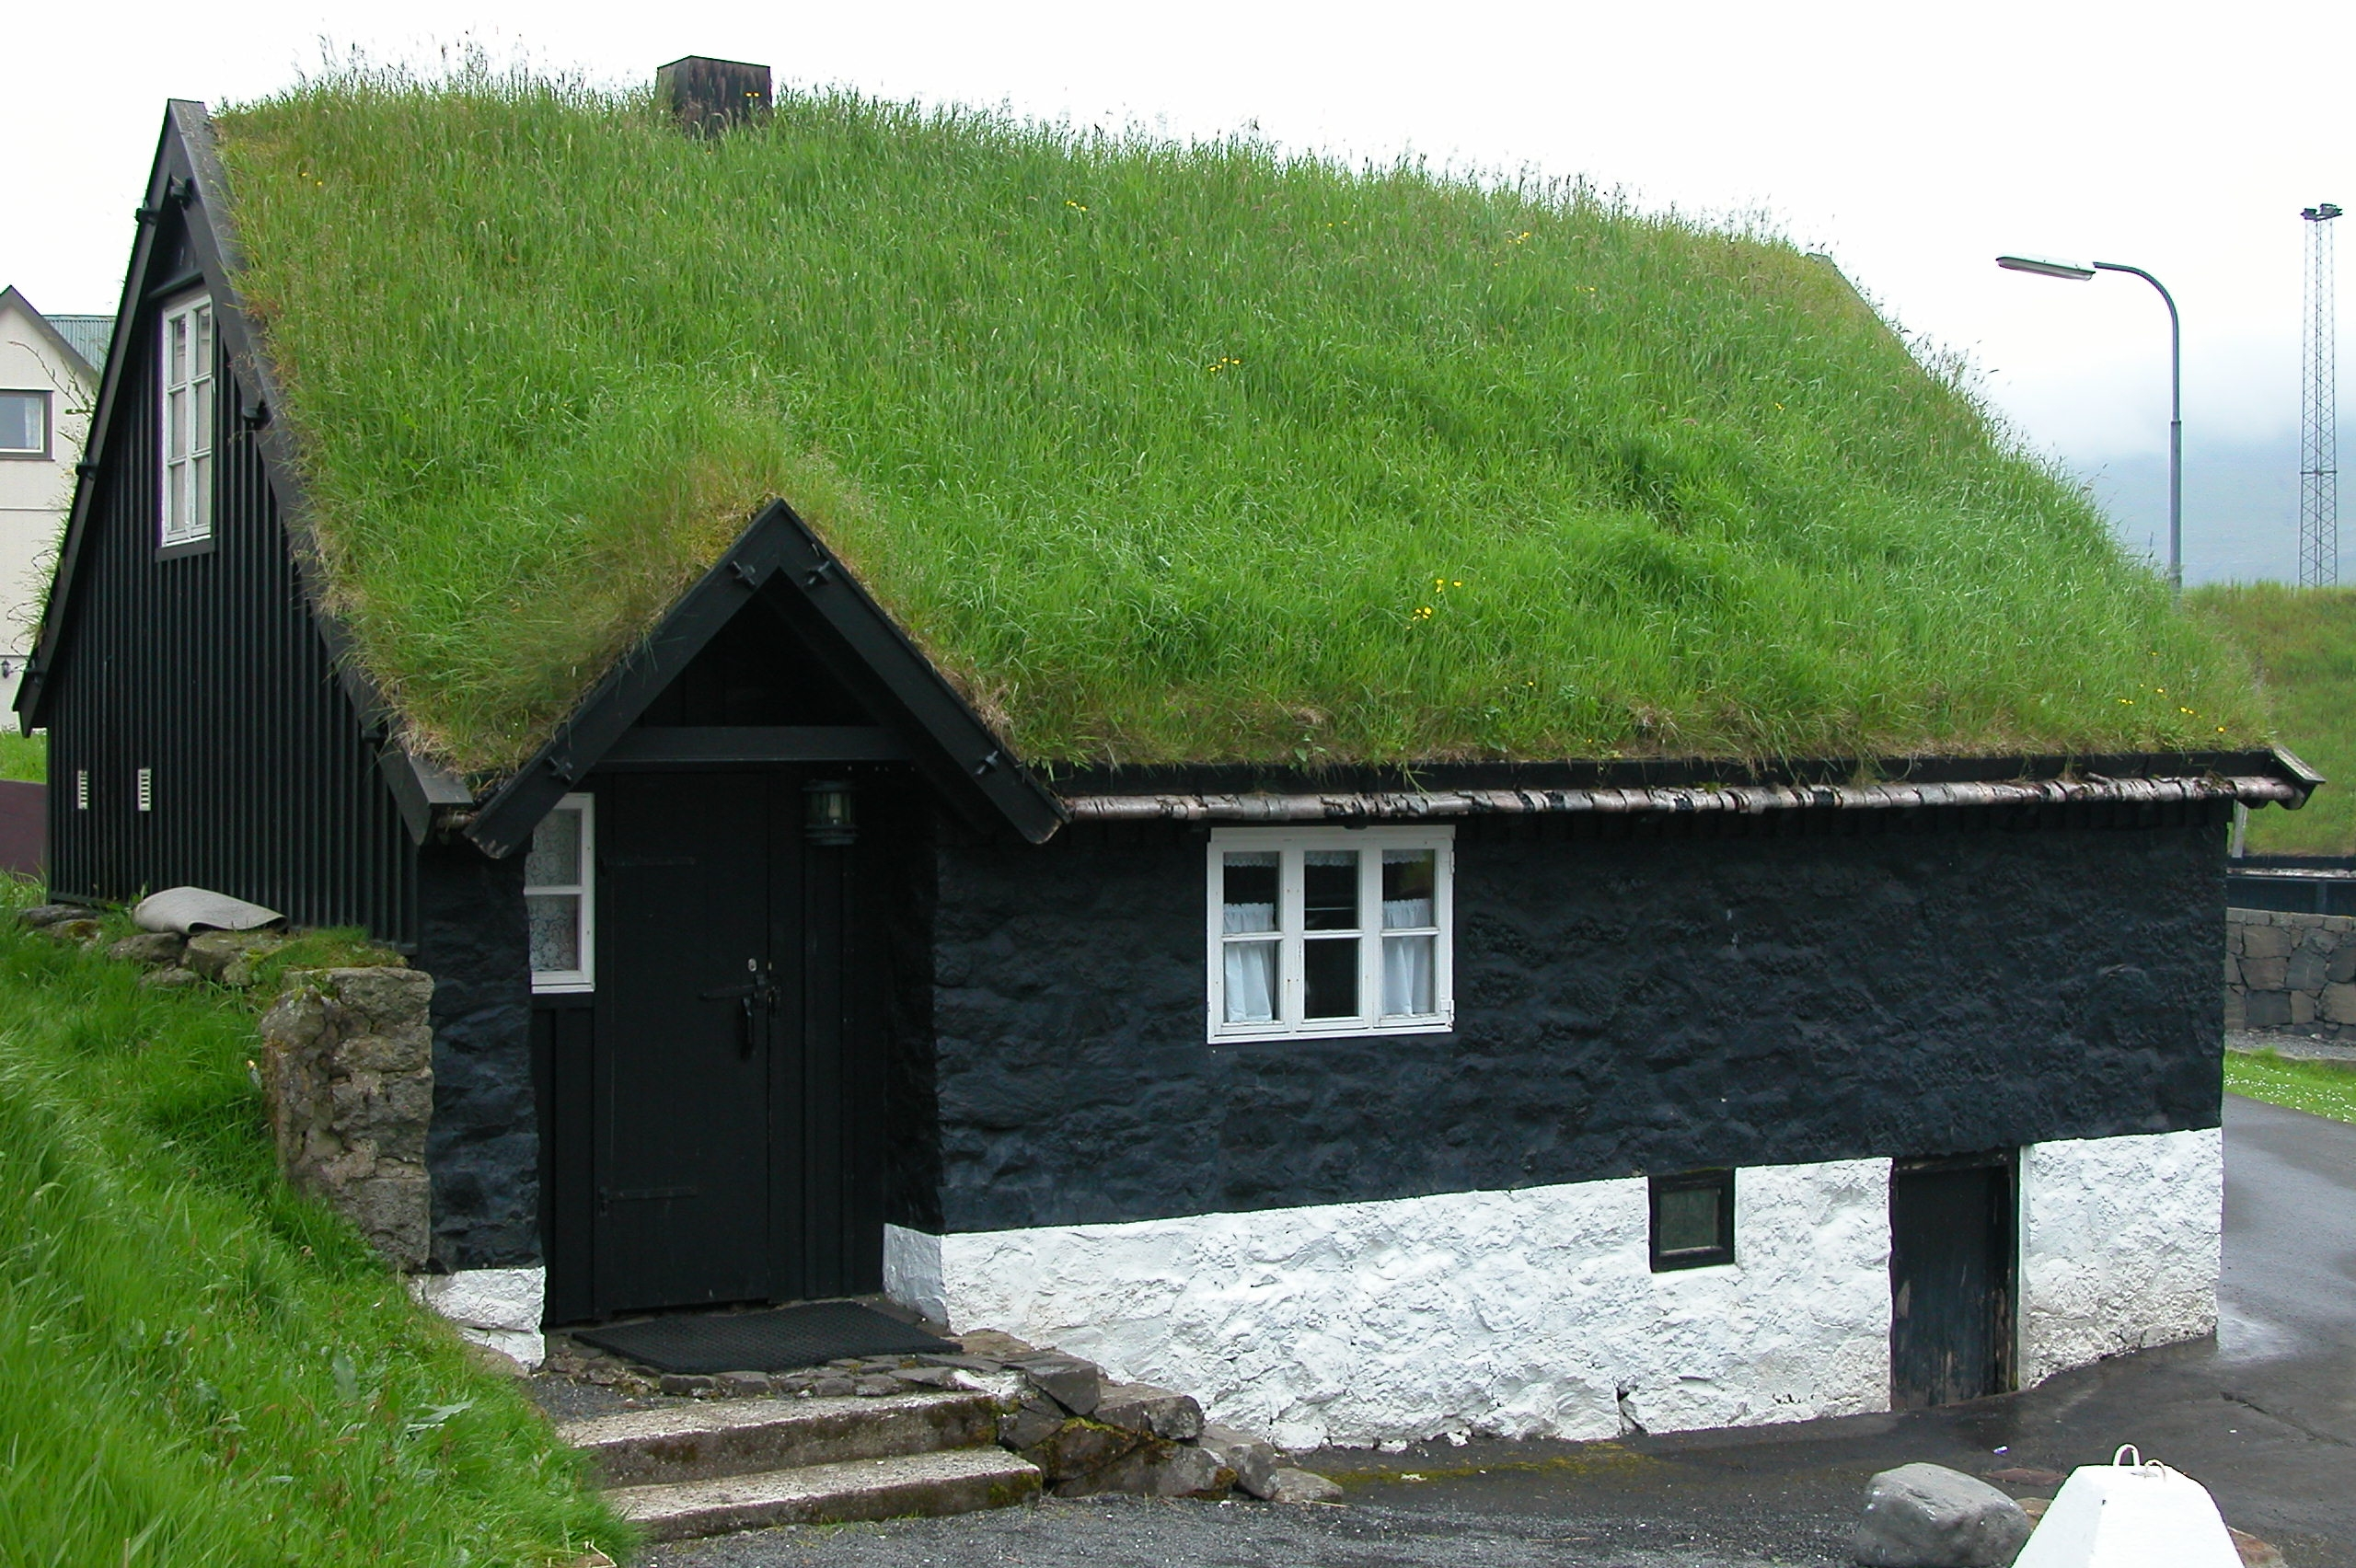 A black-and-white painted house has a grassy roof